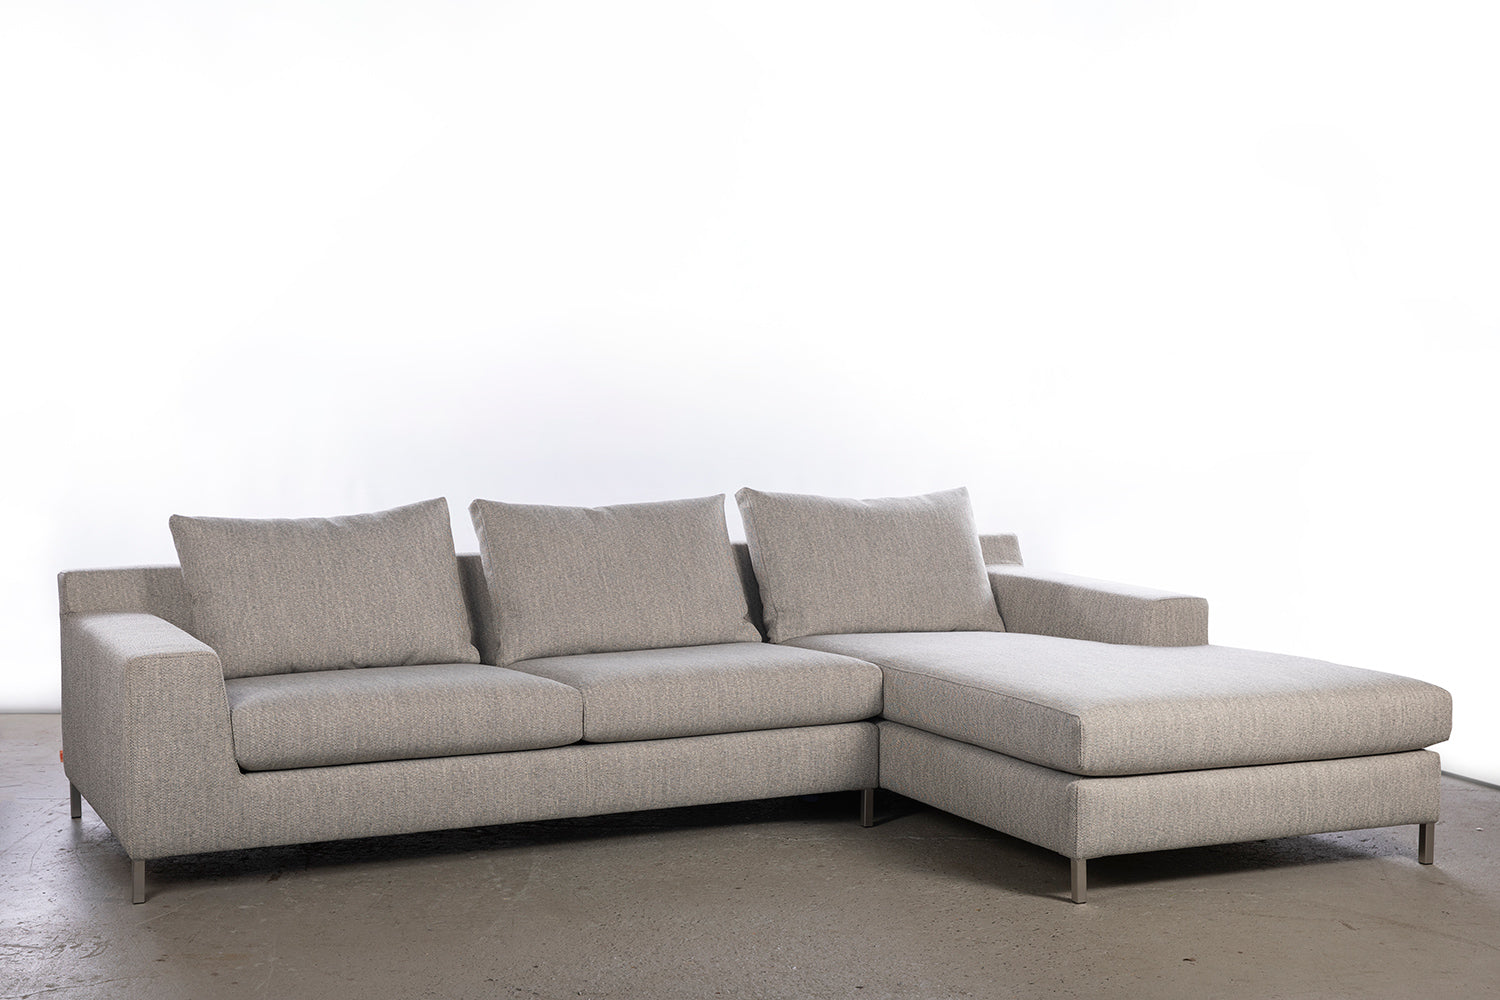 ffabb Brightside Sectional in Heavy Weave Stone Blend fabric